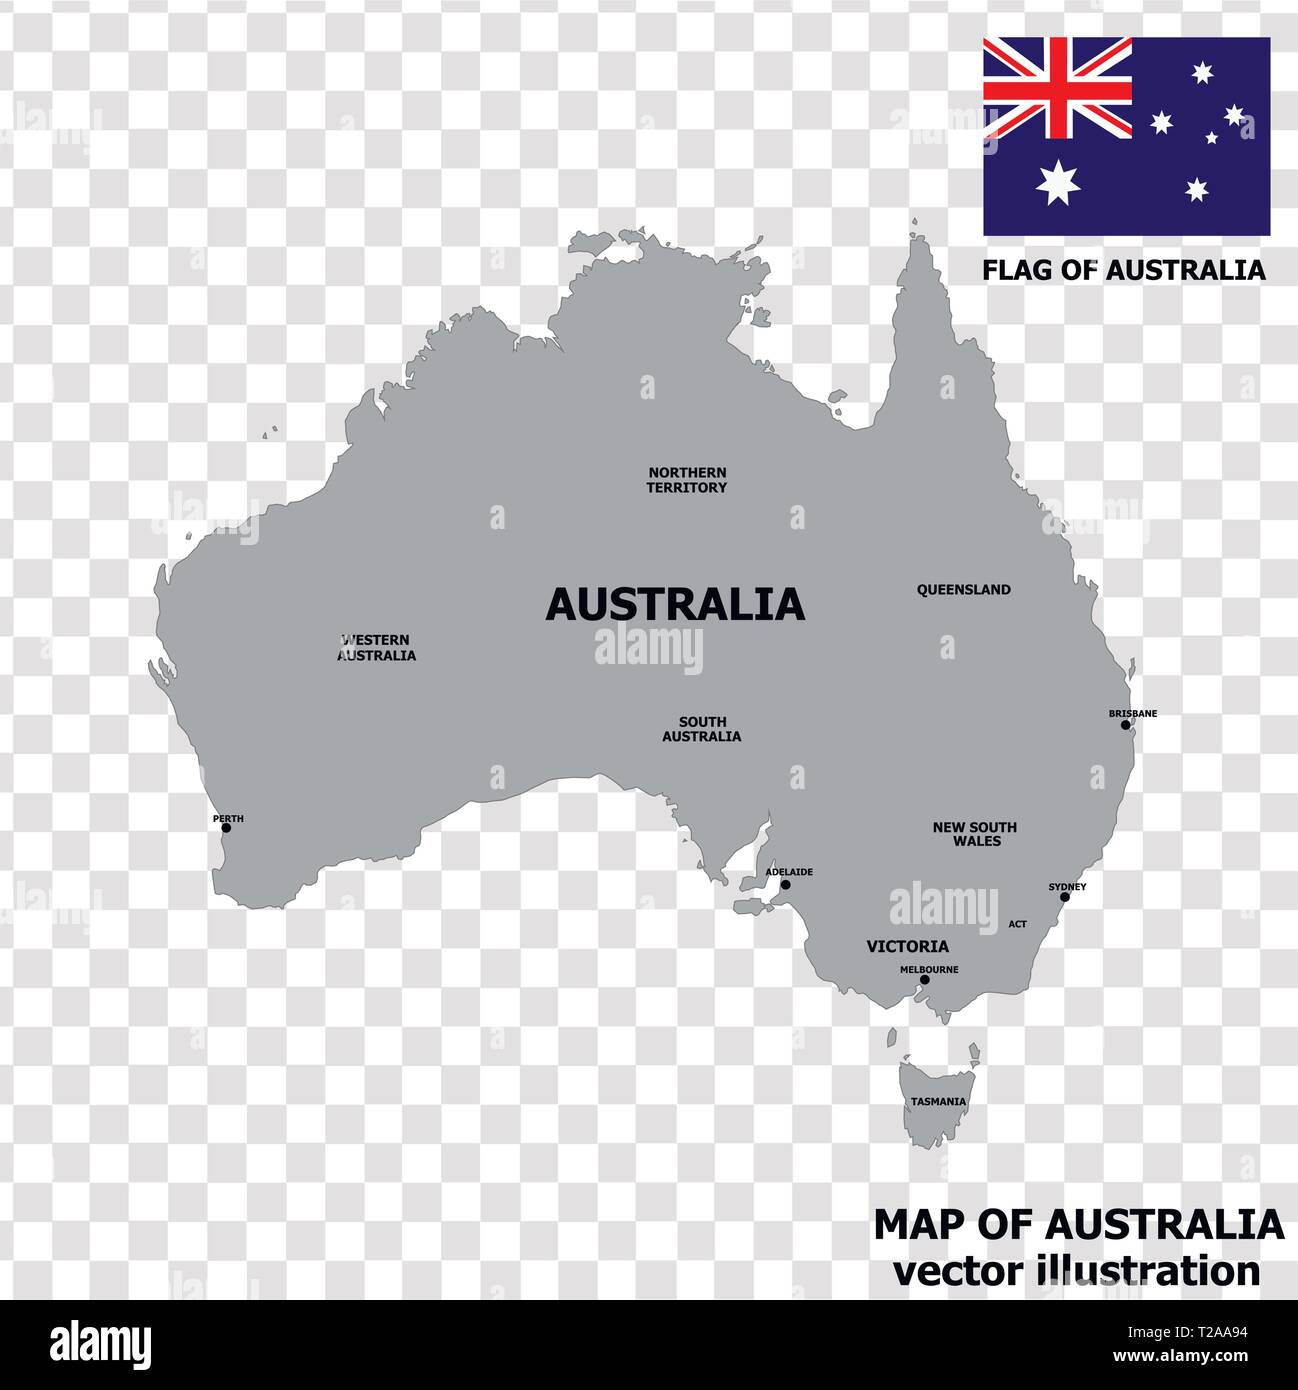 Australia Map Transparent.Map Of Australia With Flag Australian Infographic Bright